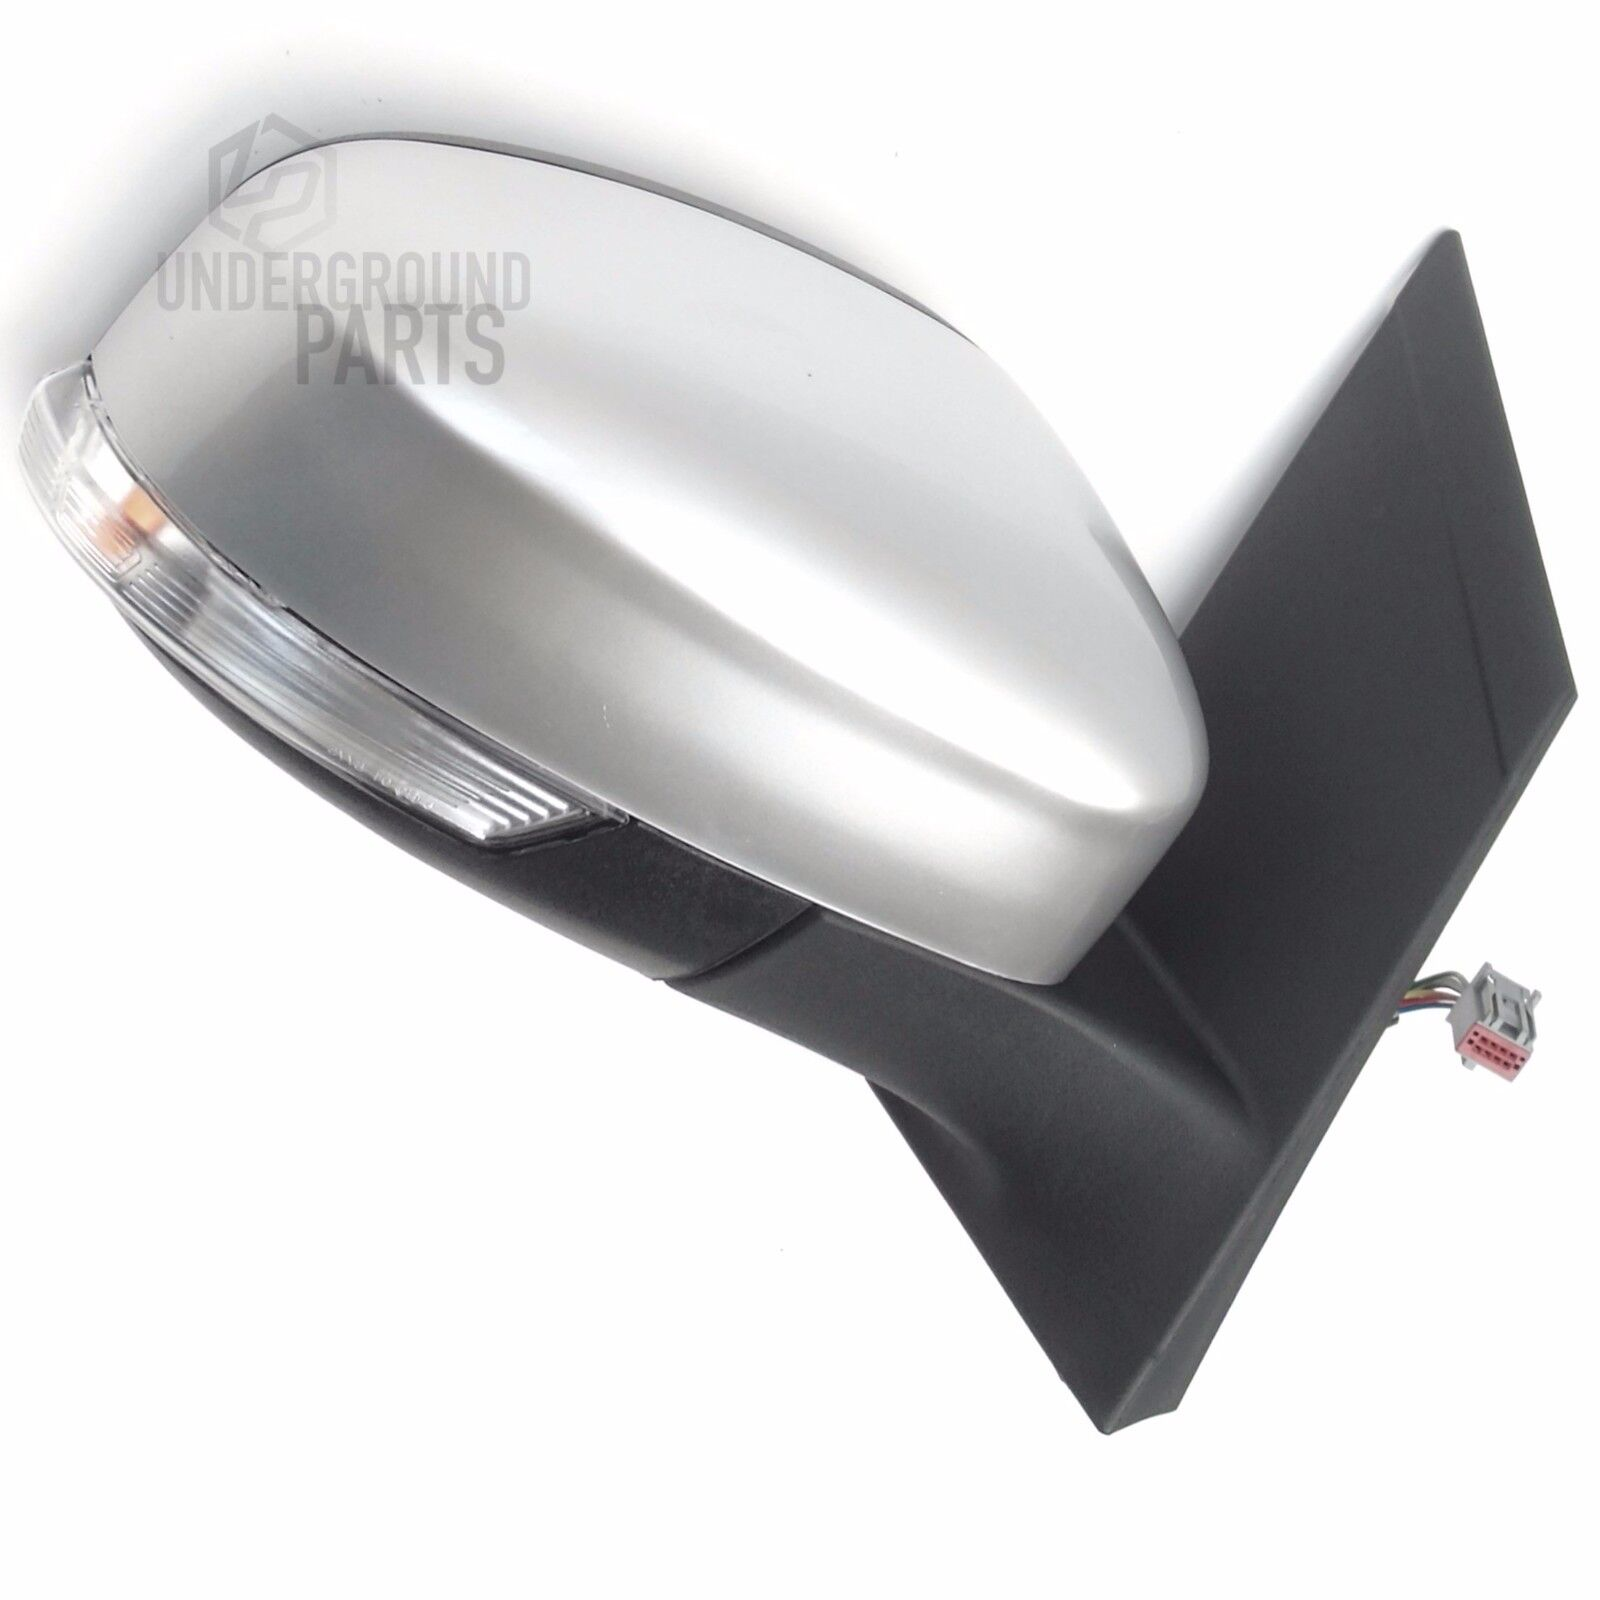 Ford Focus Drivers Side Door Wing Mirror Moondust Silver O S 2008 2010 Car Wing Mirrors Accessories Vehicle Parts Accessories